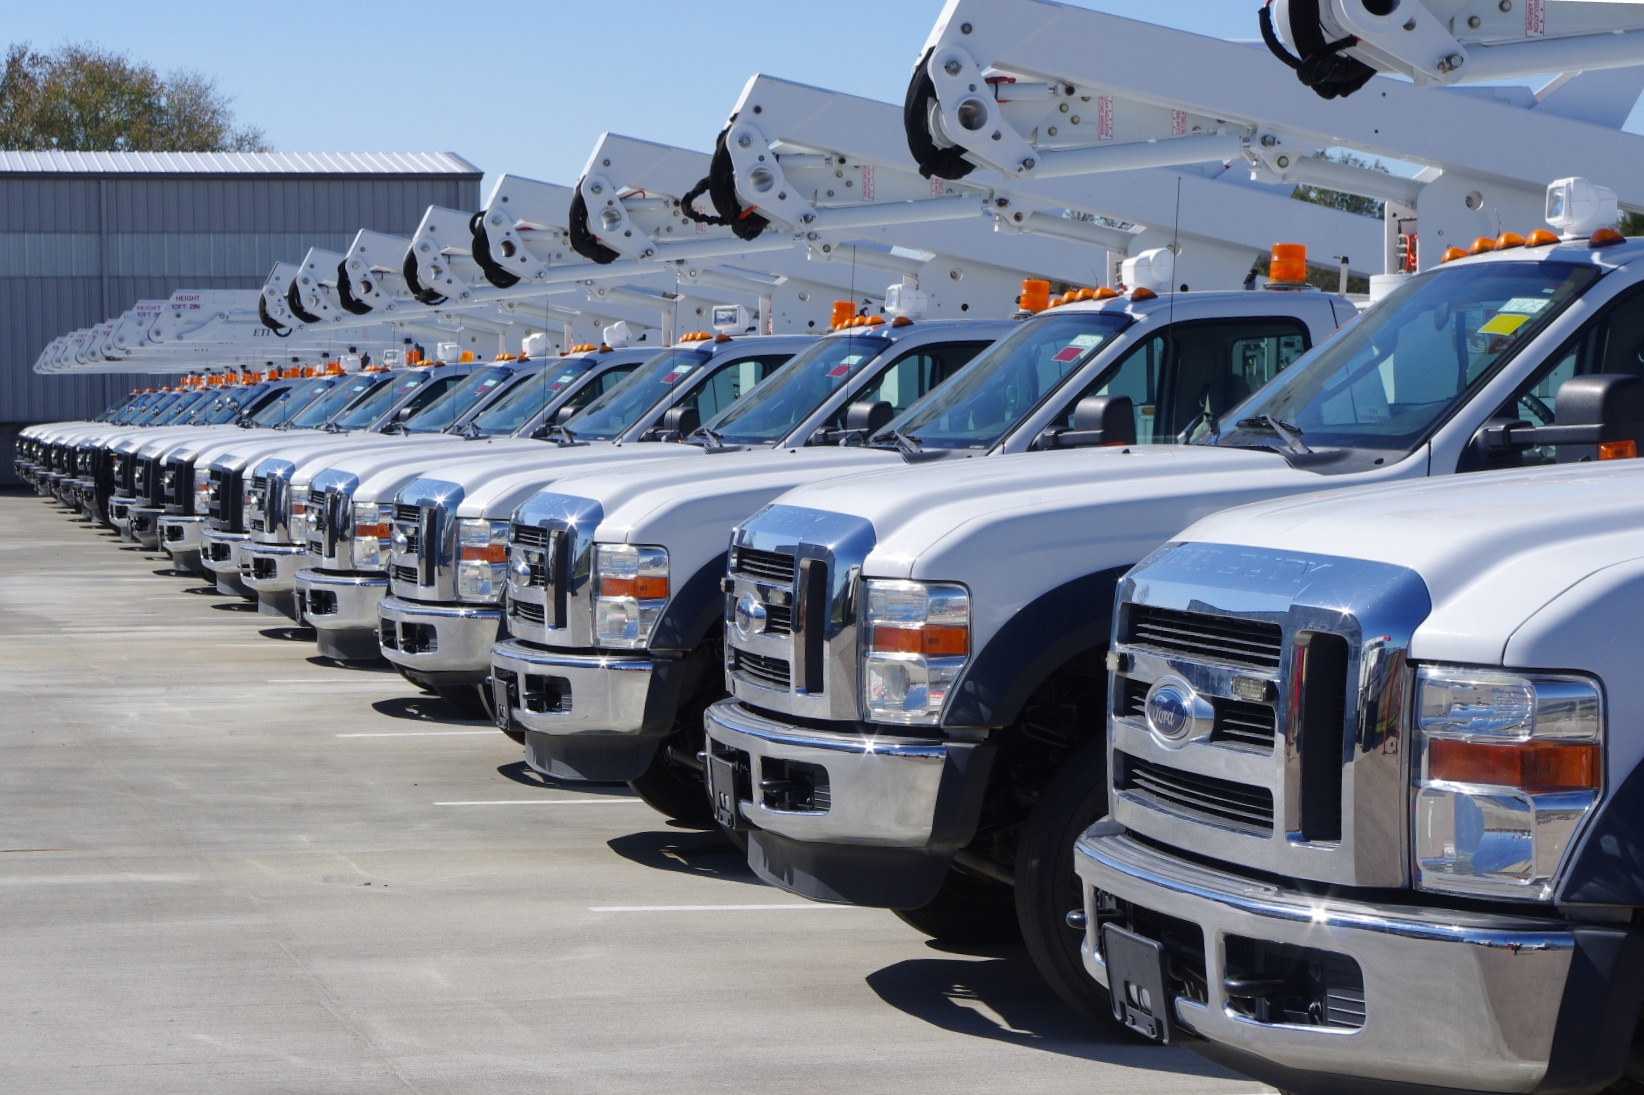 Gps Fleet Tracking For Utility Vehicles Electricity